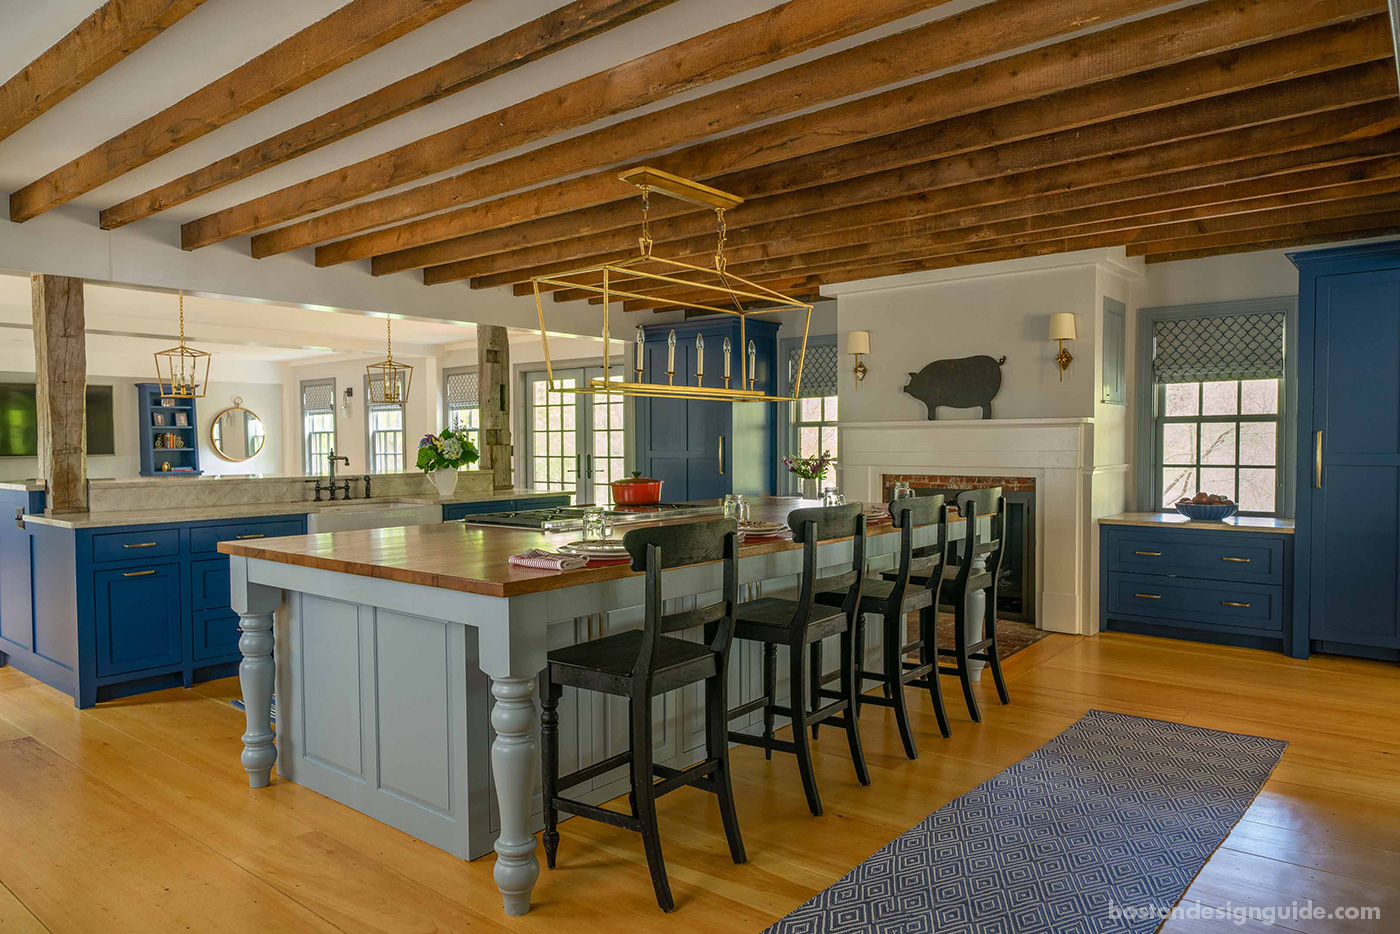 Farmhouse-style kitchen for a historic renovation by Cummings Architects